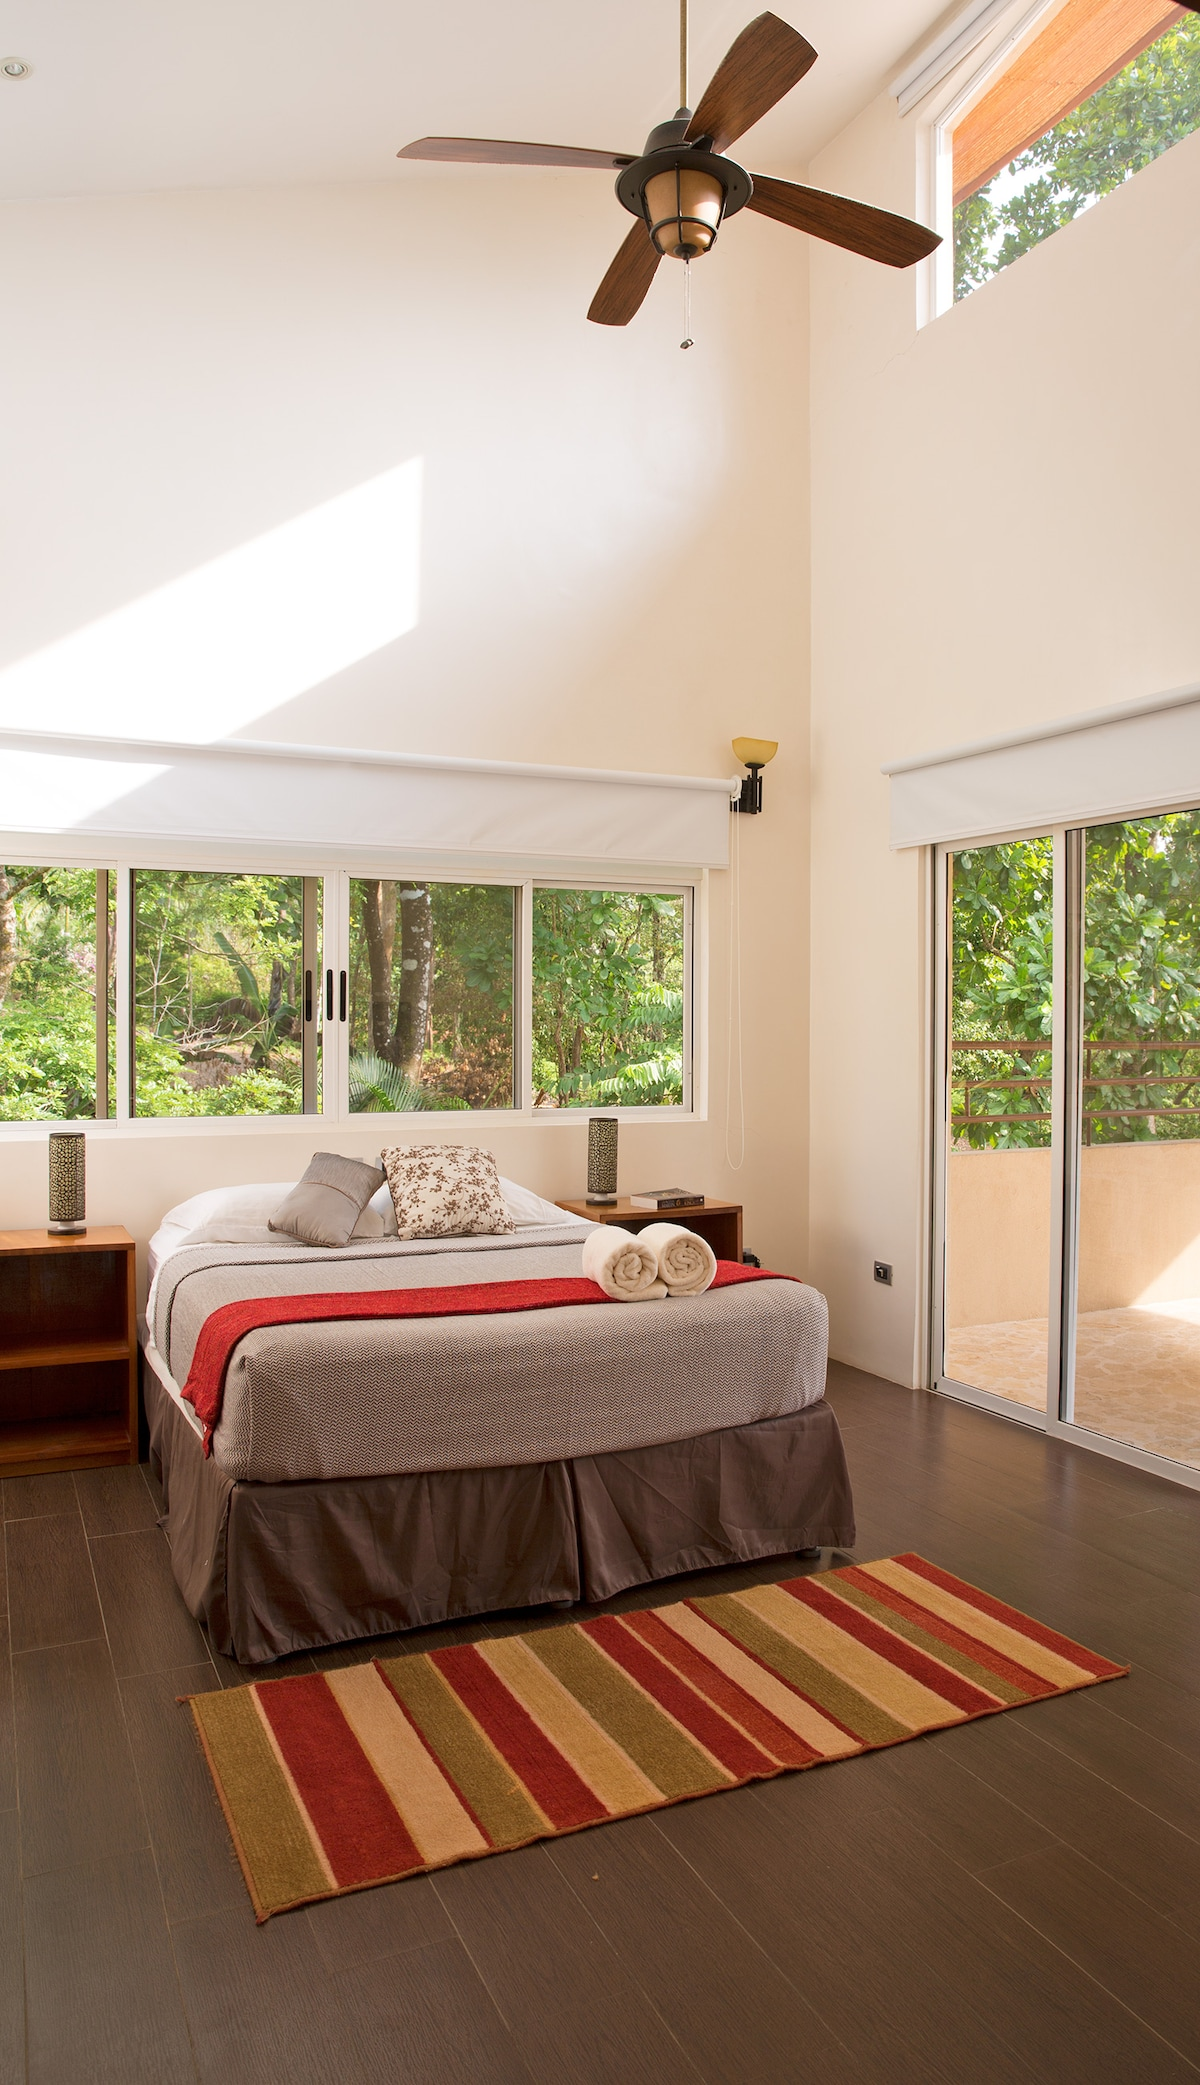 The second of two master bedrooms opens up to a dreamy tropical balcony.